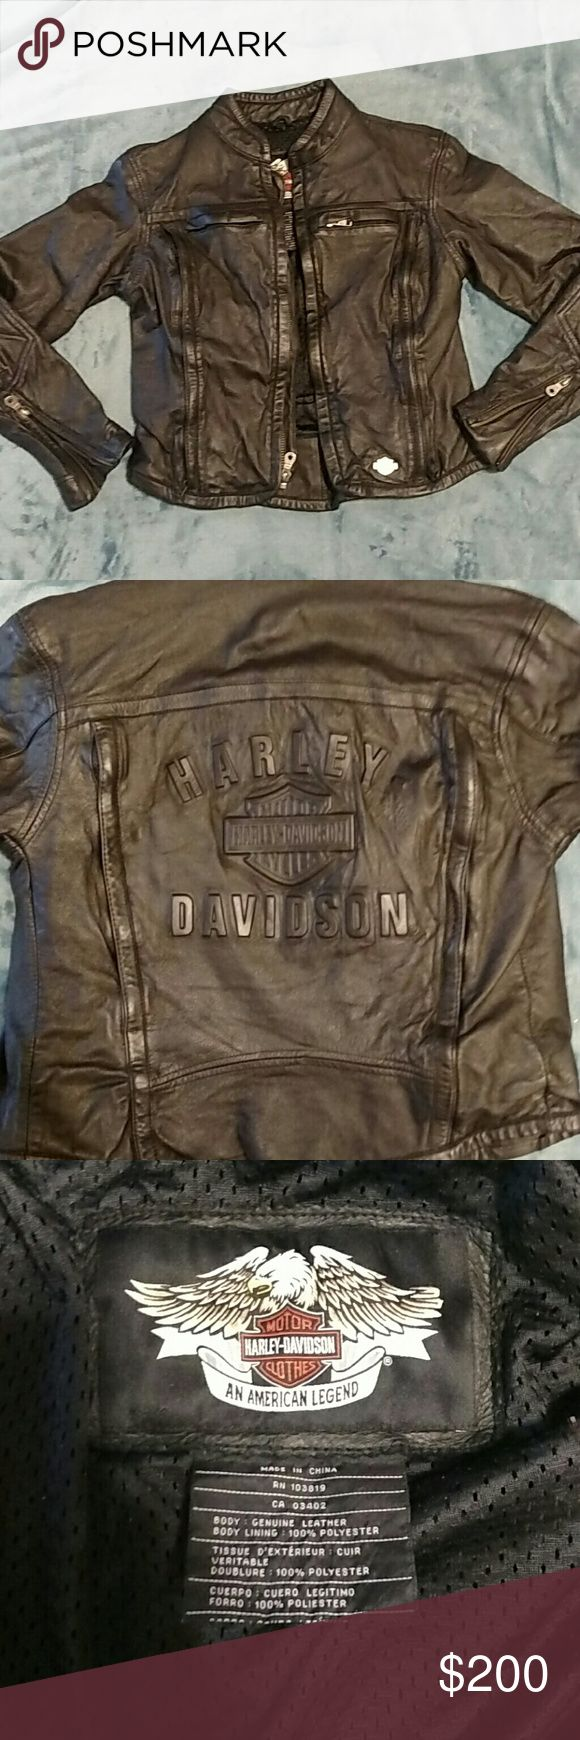 Sexy Ladies Harley Davidson Jacket This leather jacket is fitted and super sexy! Only worn a few times. In great condition! Offers welcome! Harley-Davidson Jackets & Coats